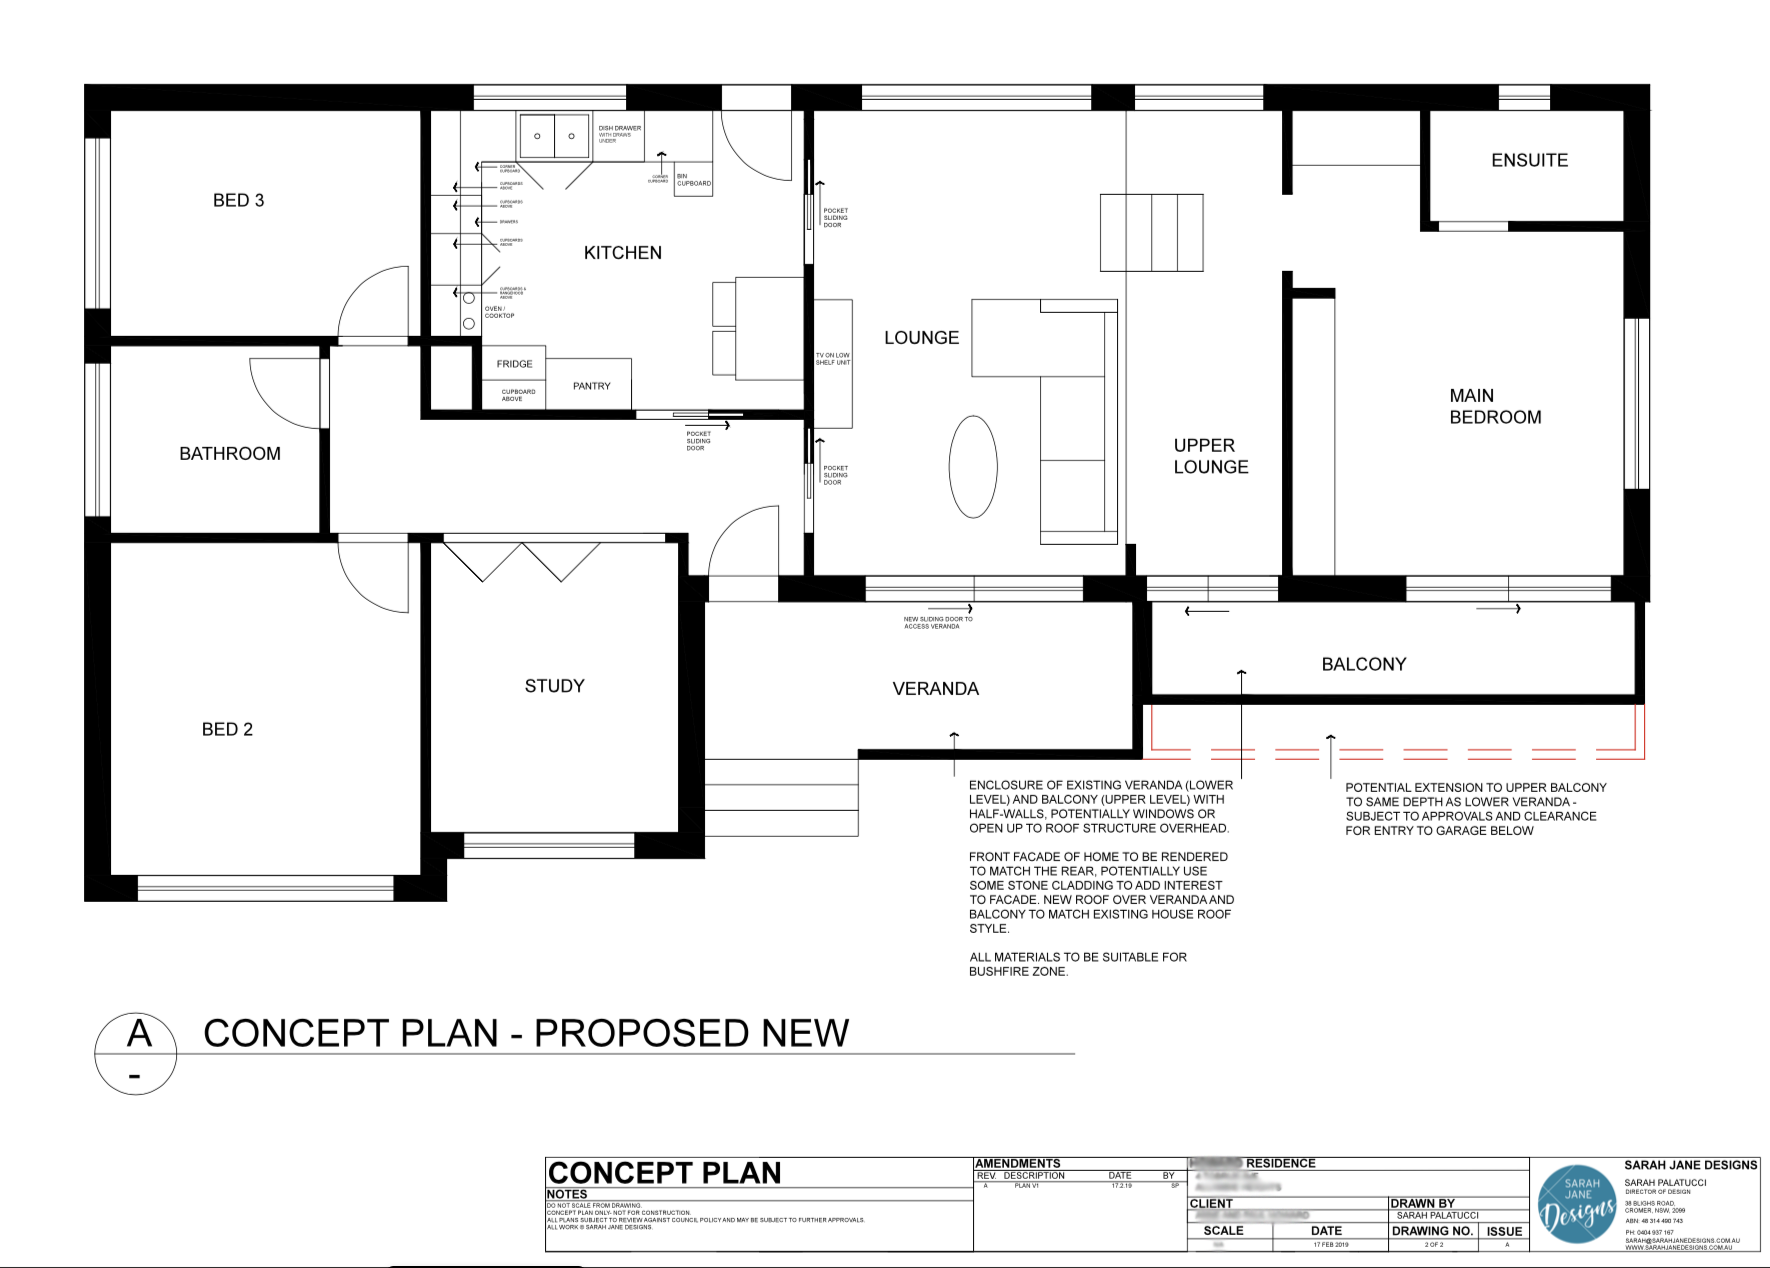 Residential Design - Concept Plan